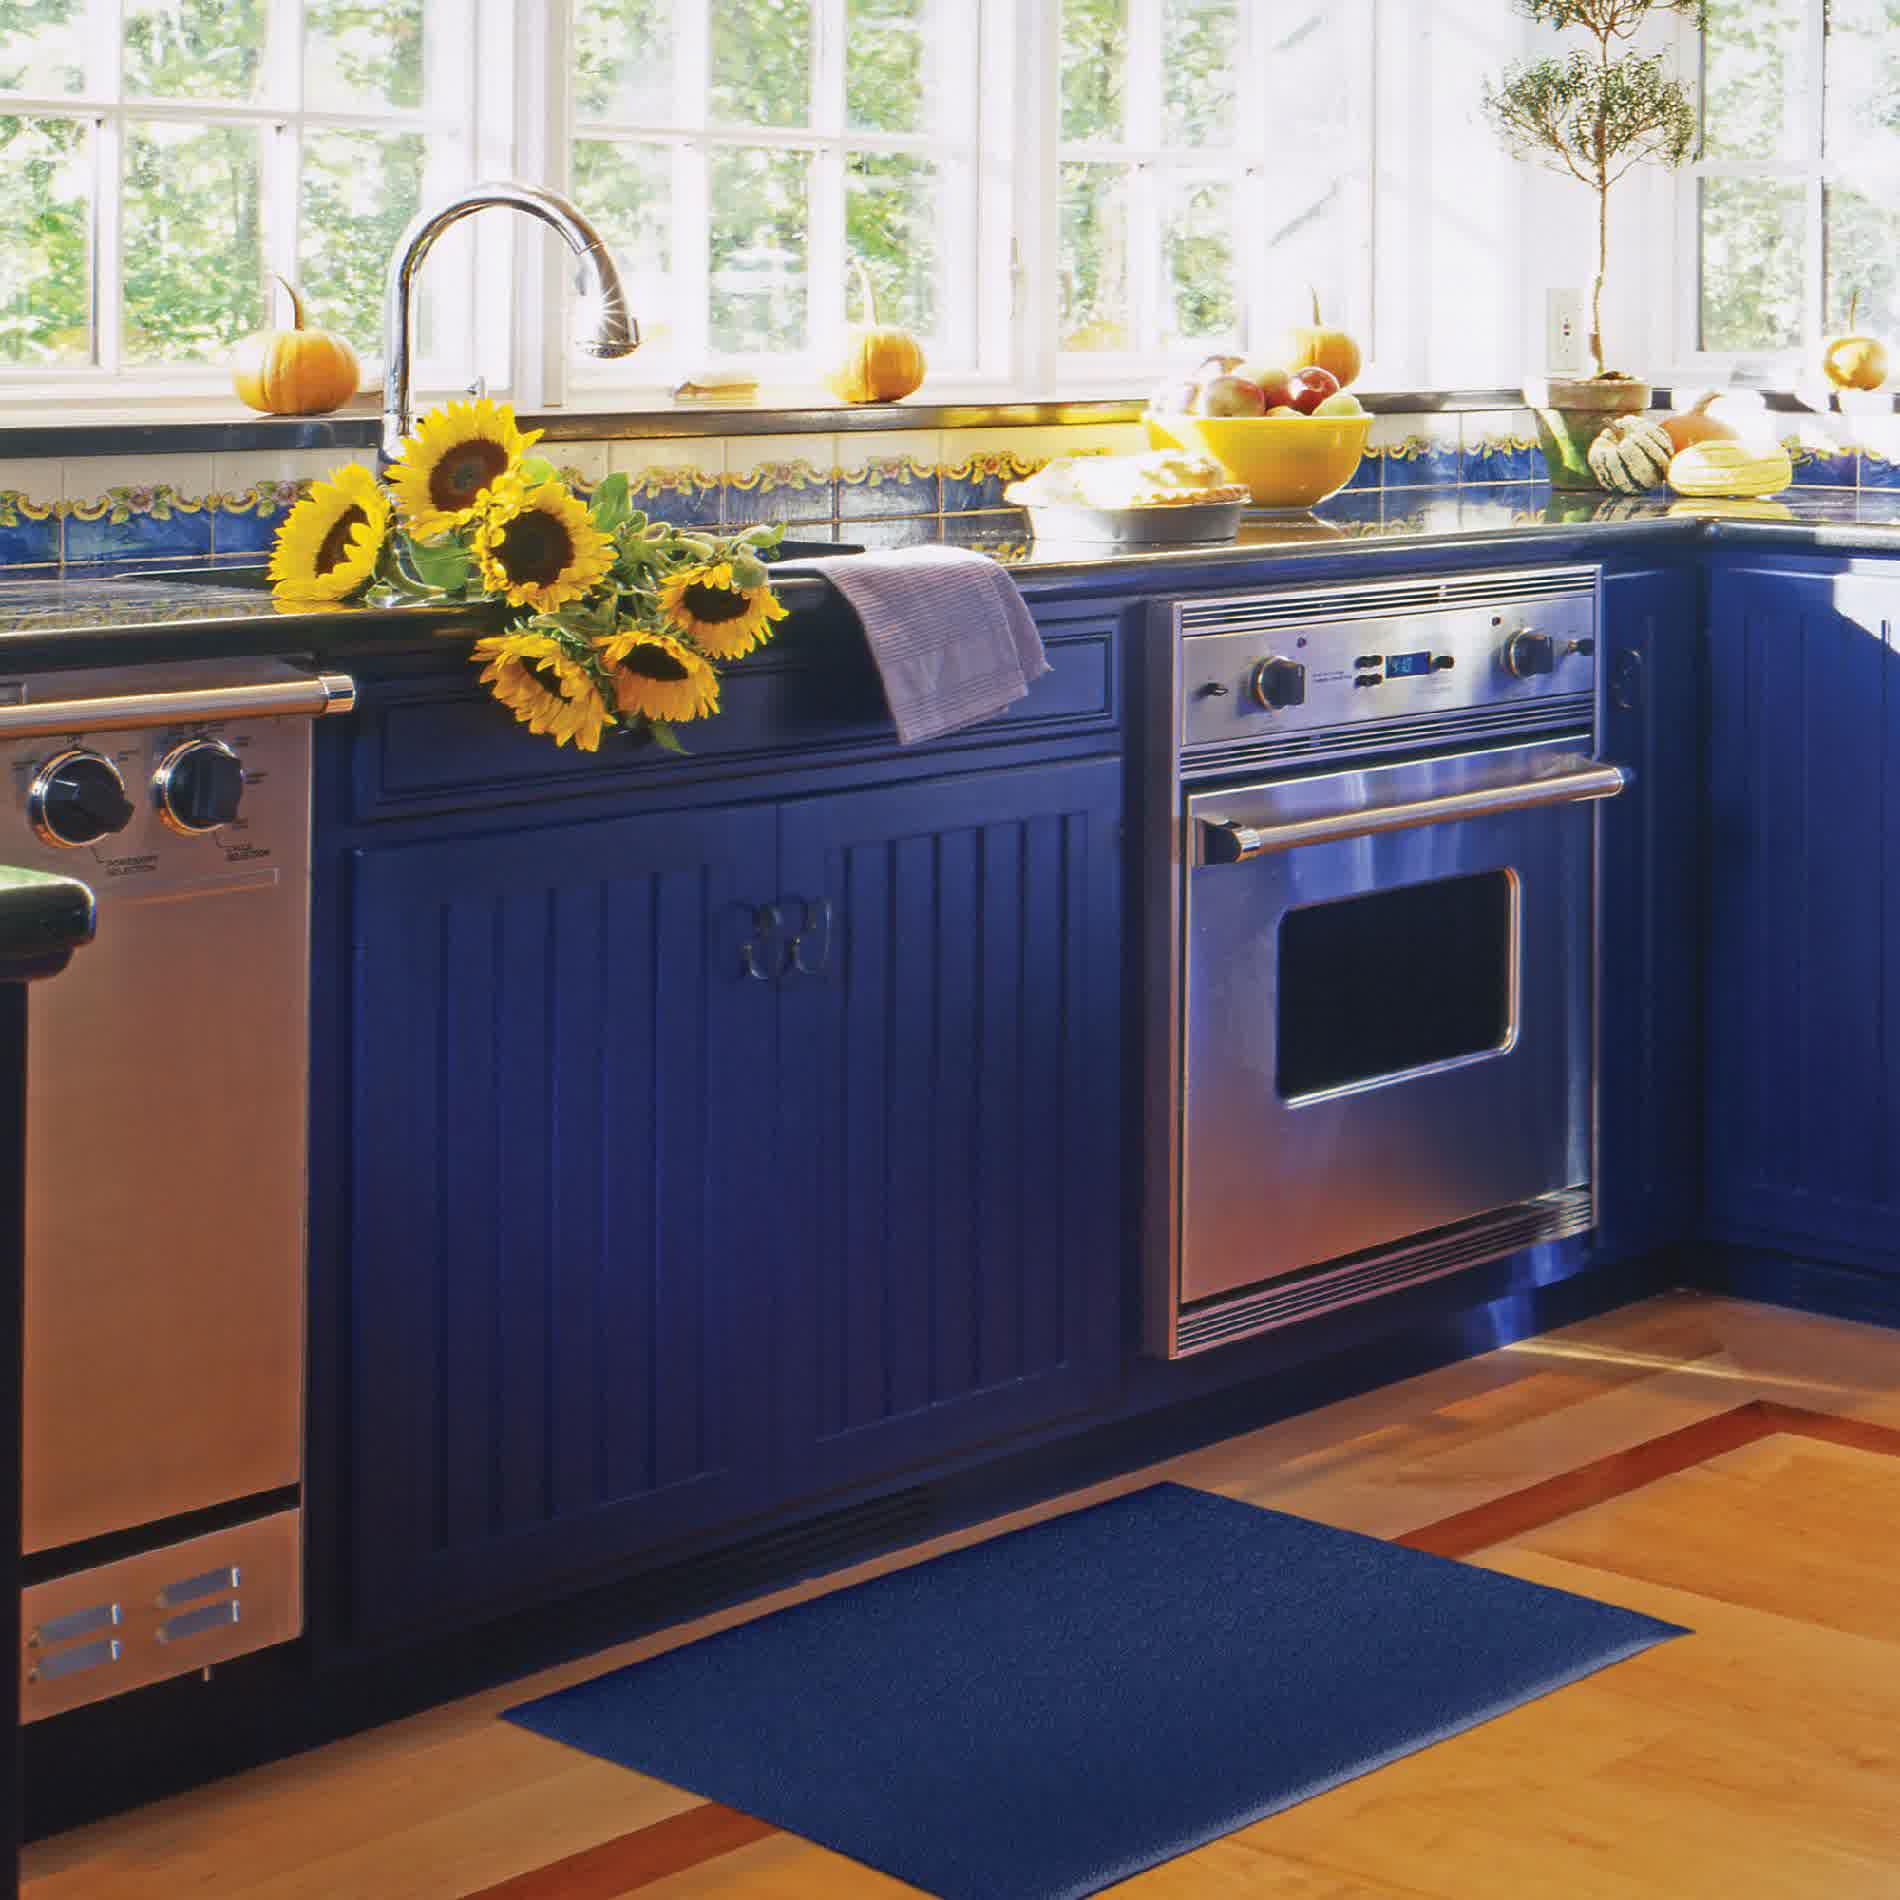 Ocean Blue Kitchen Mat Deep Cabinet System The Garden Windows With Small Pumpkins Decoration